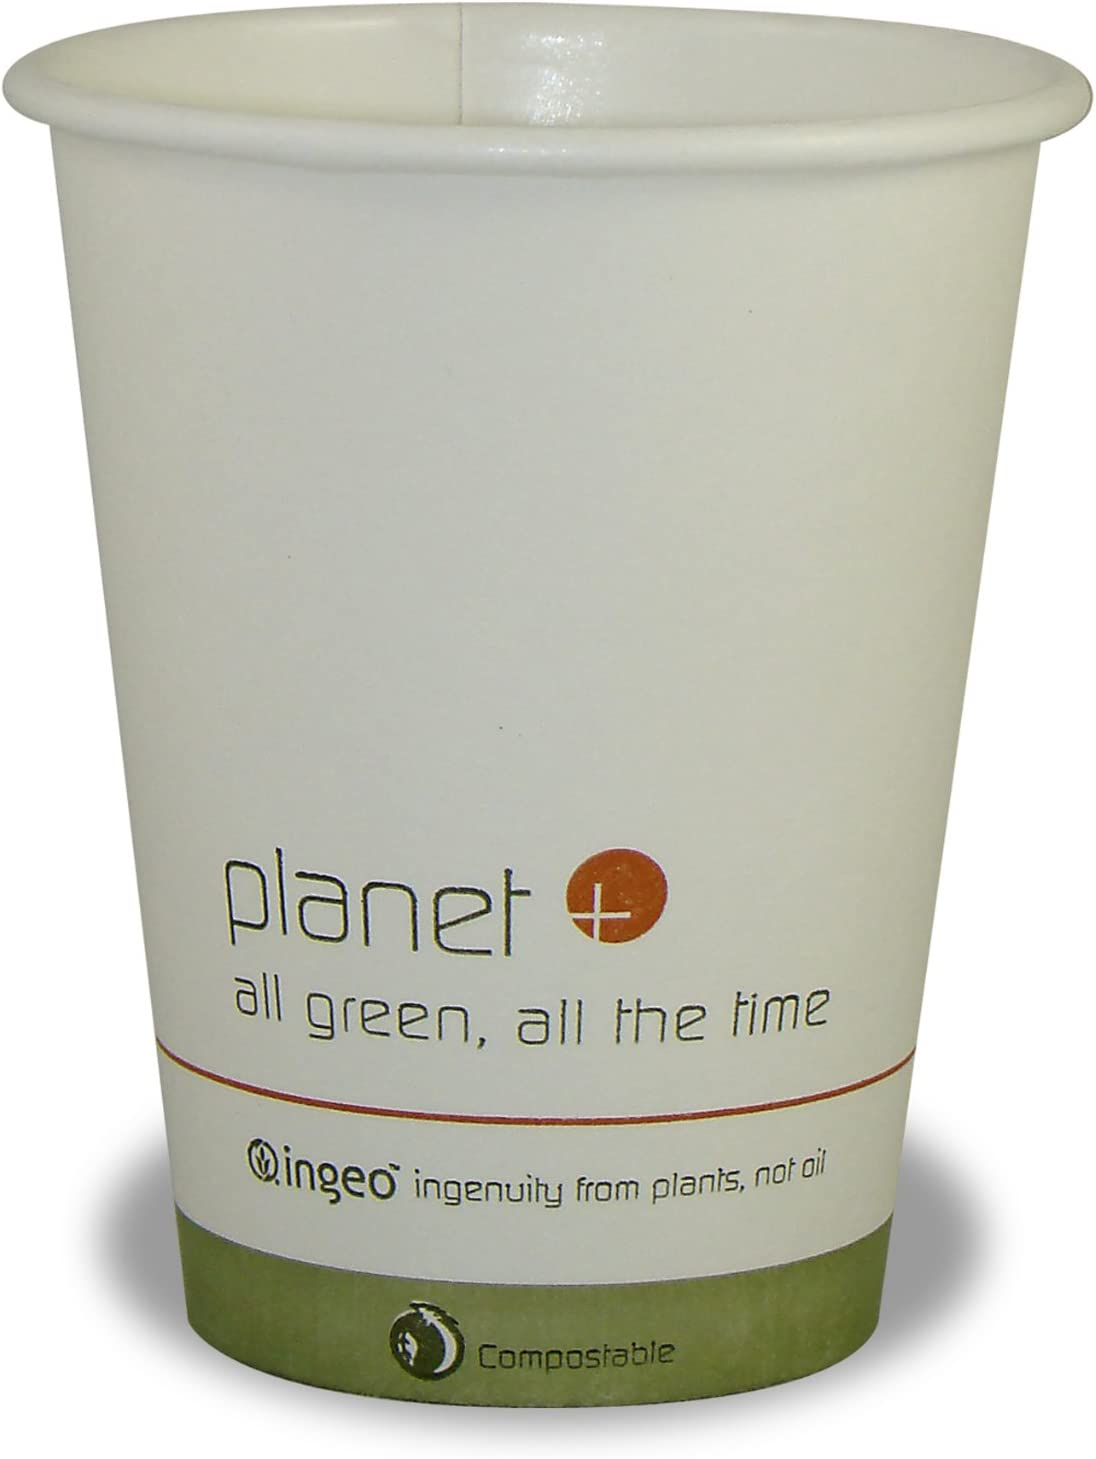 B002SQJI98 Planet + 100% Compostable PLA Laminated Hot Cup, 8-Ounce, 1000-Count Case 71cyzwCUiUL